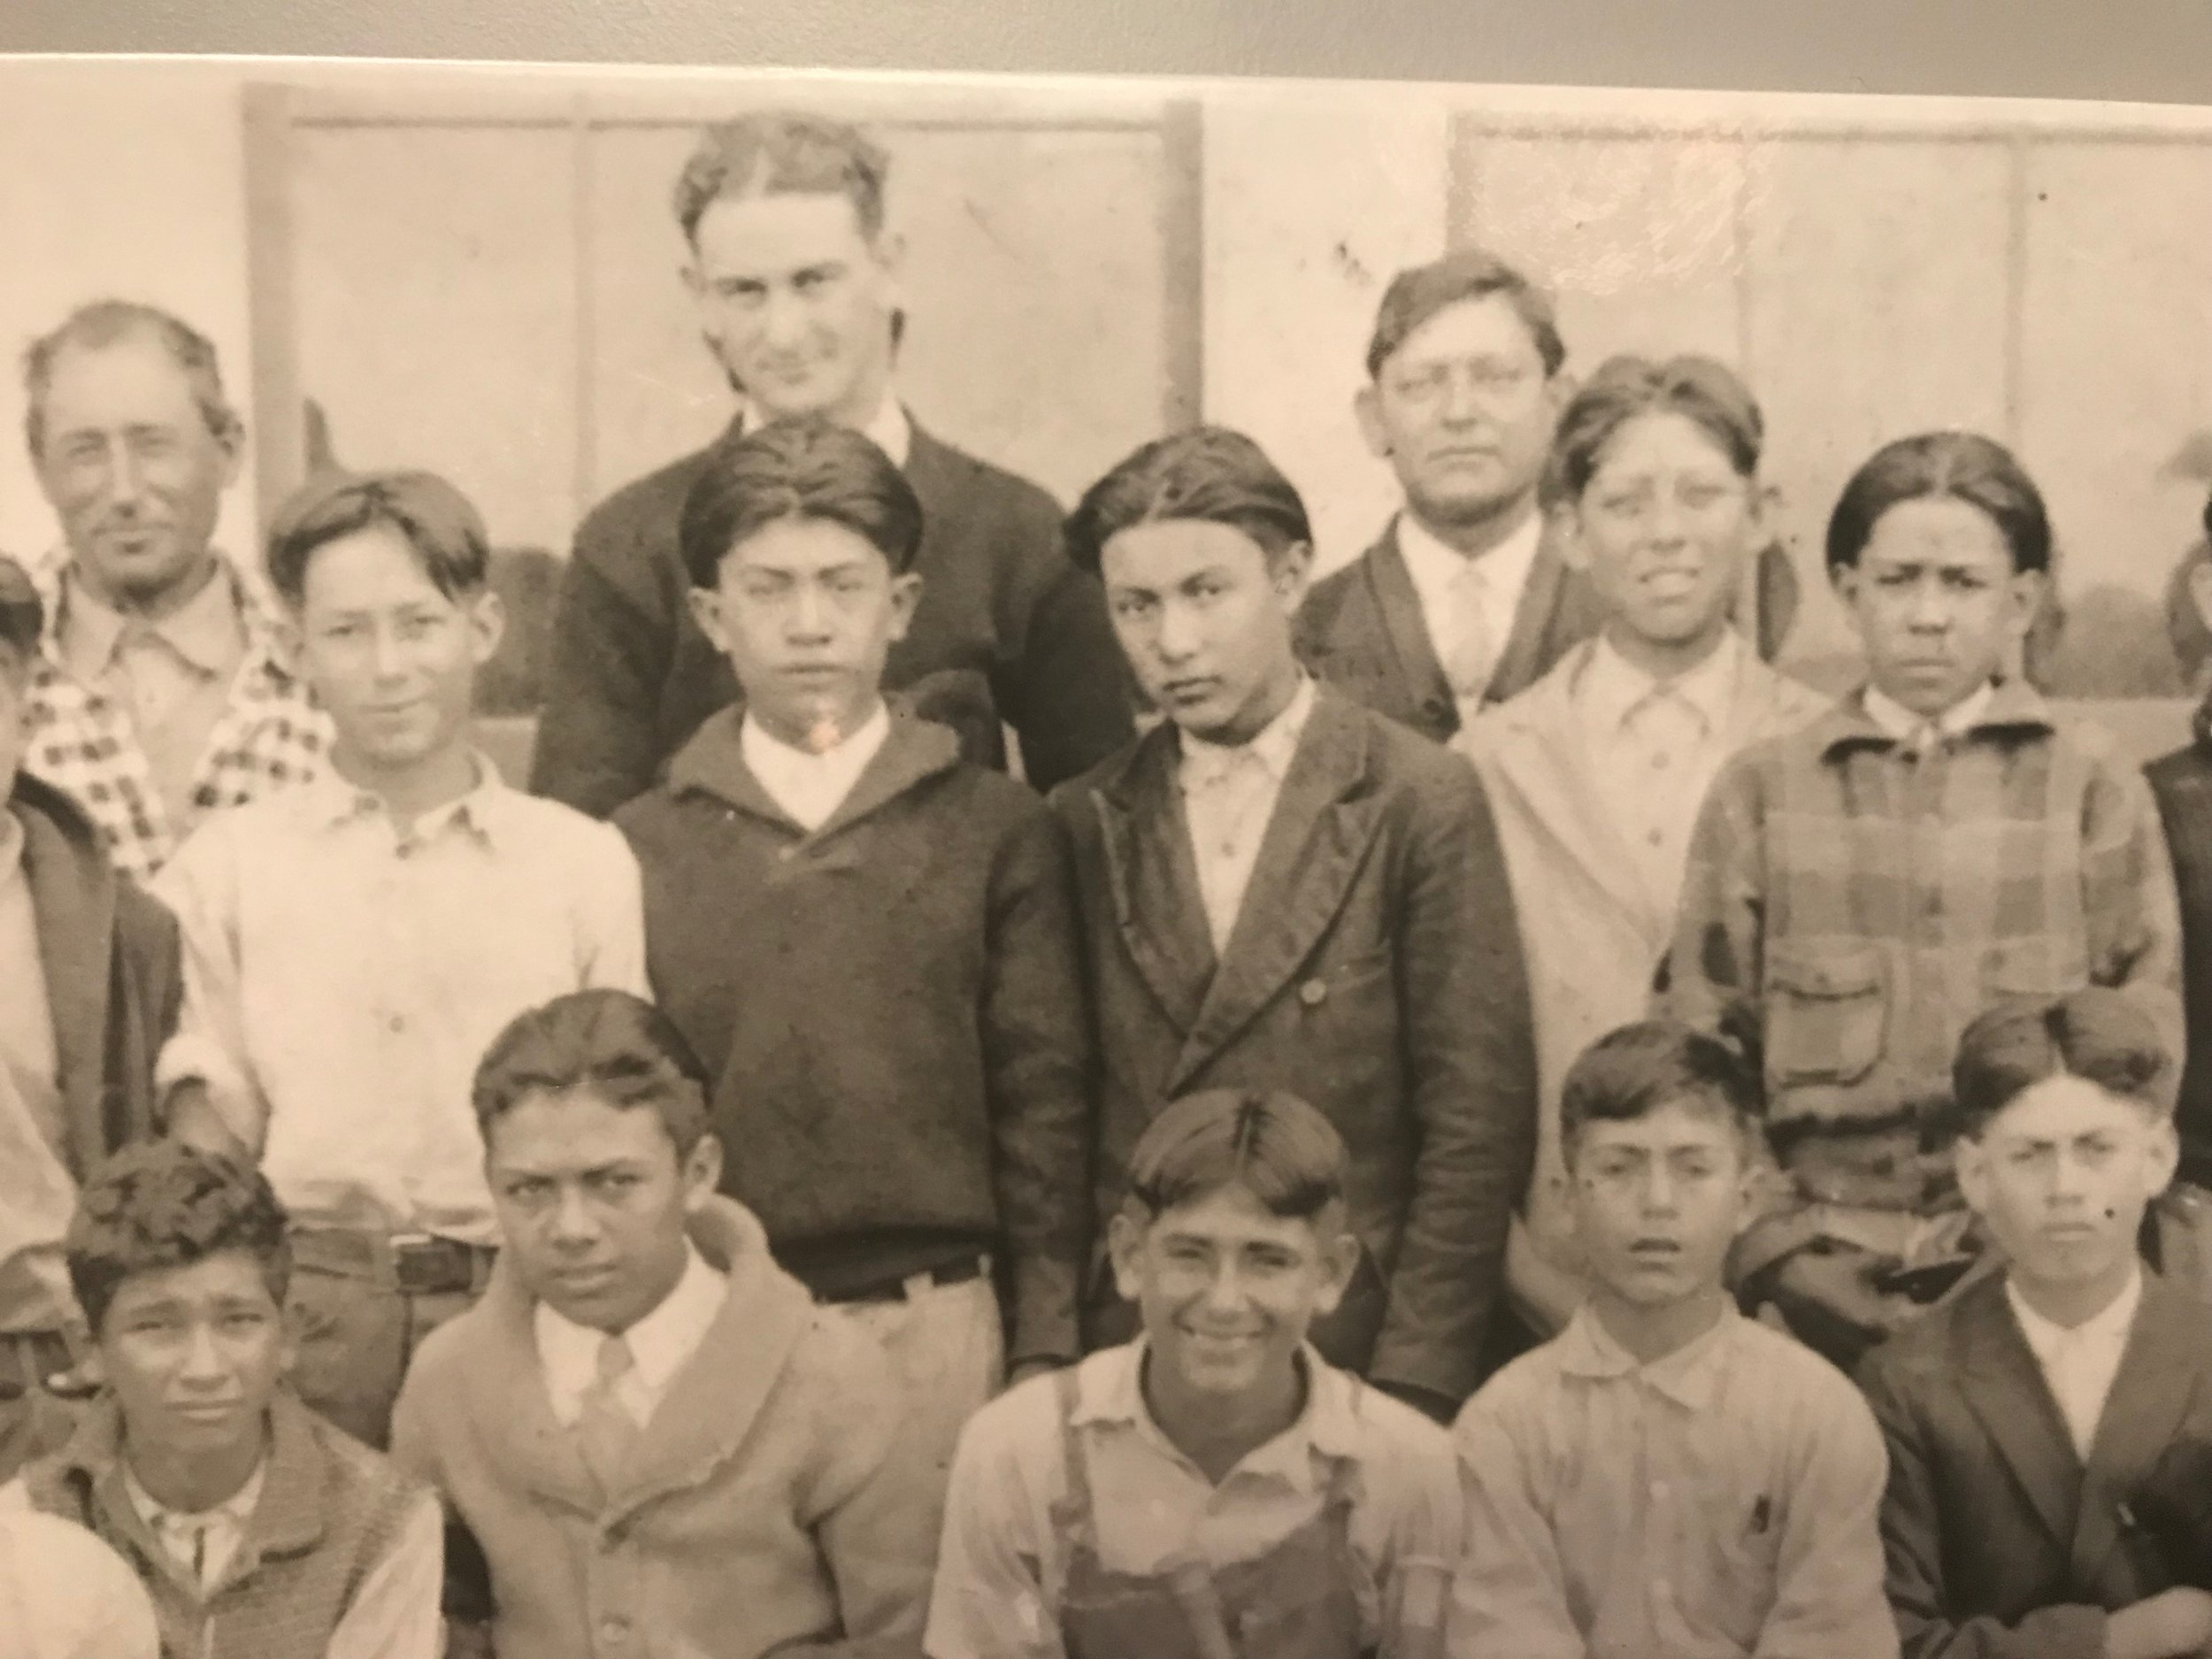 Young Lyndon Johnson with his students in Cotulla, Texas. He later said his experience in the poor Mexican-American community fueled his commitment to fight poverty and discrimination.